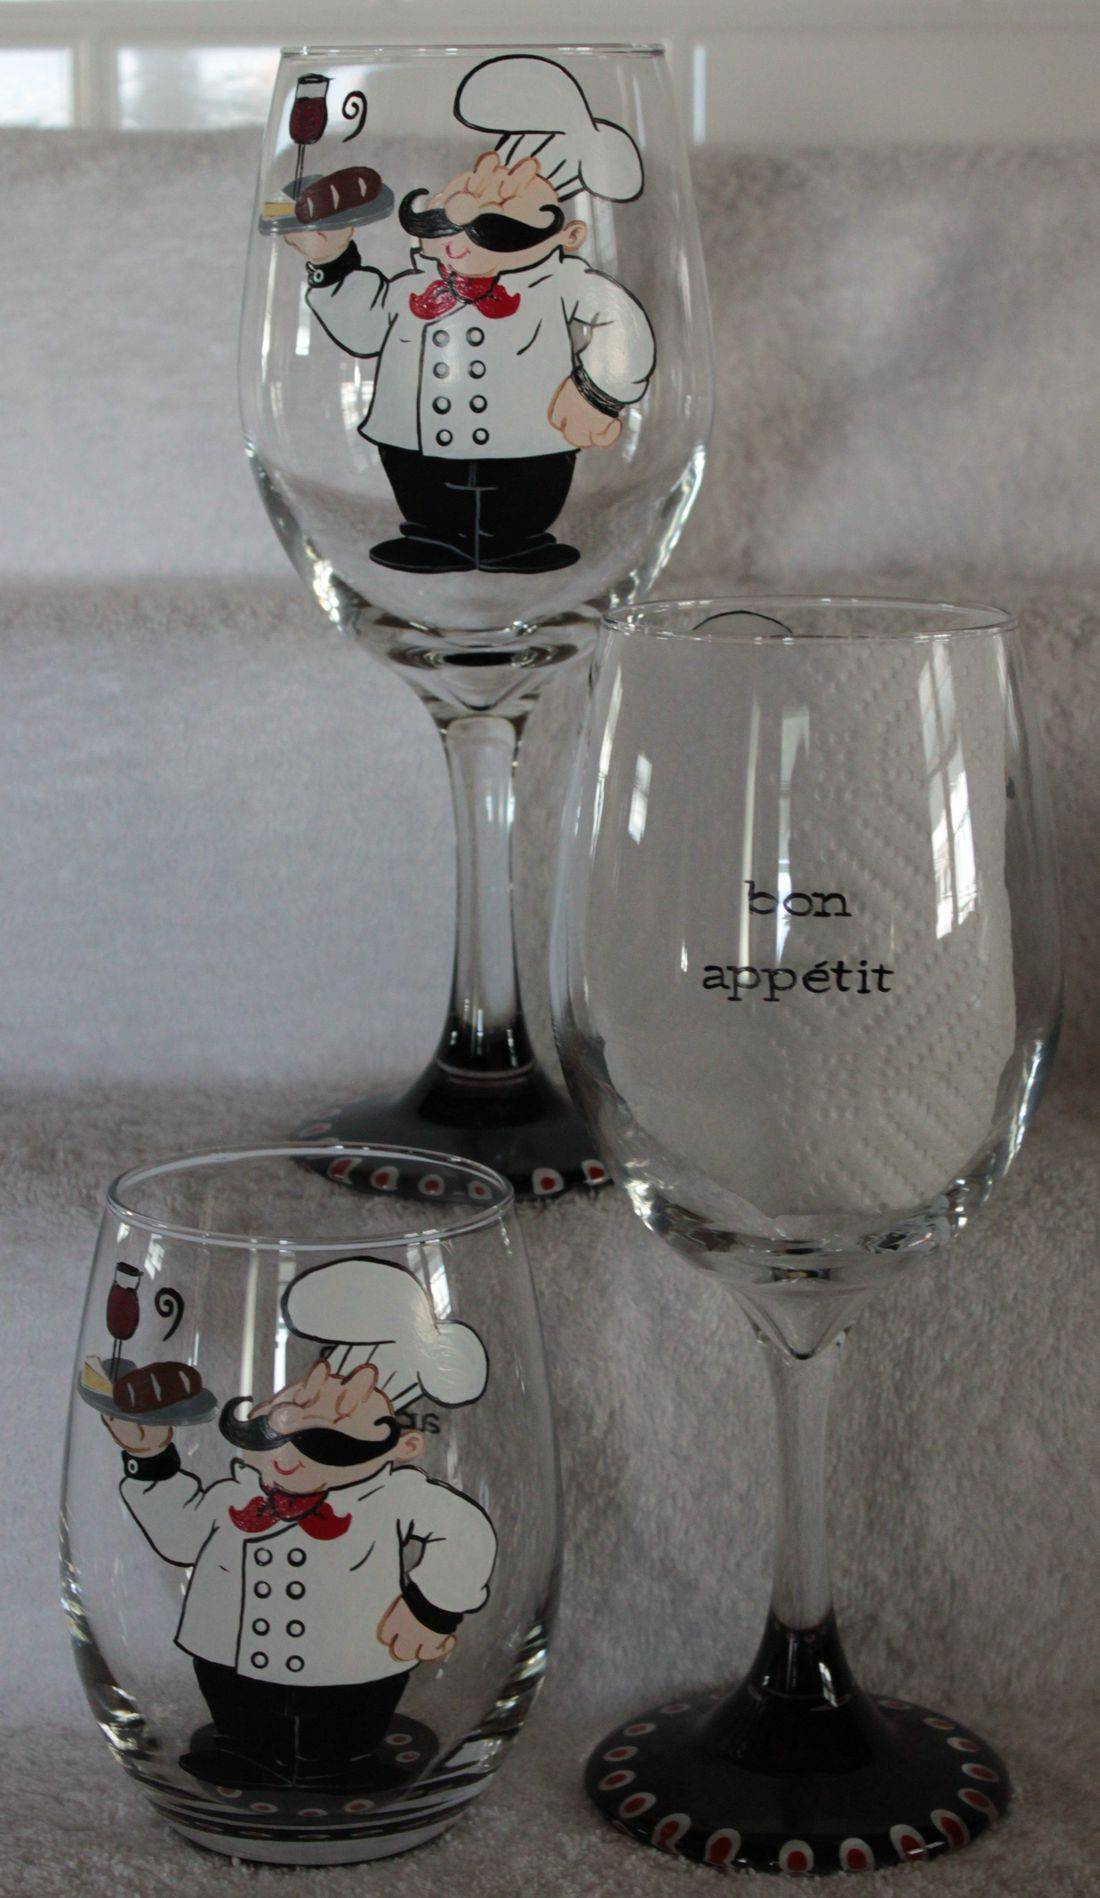 chef wine glass, cooking wine glass, french chef wine glass